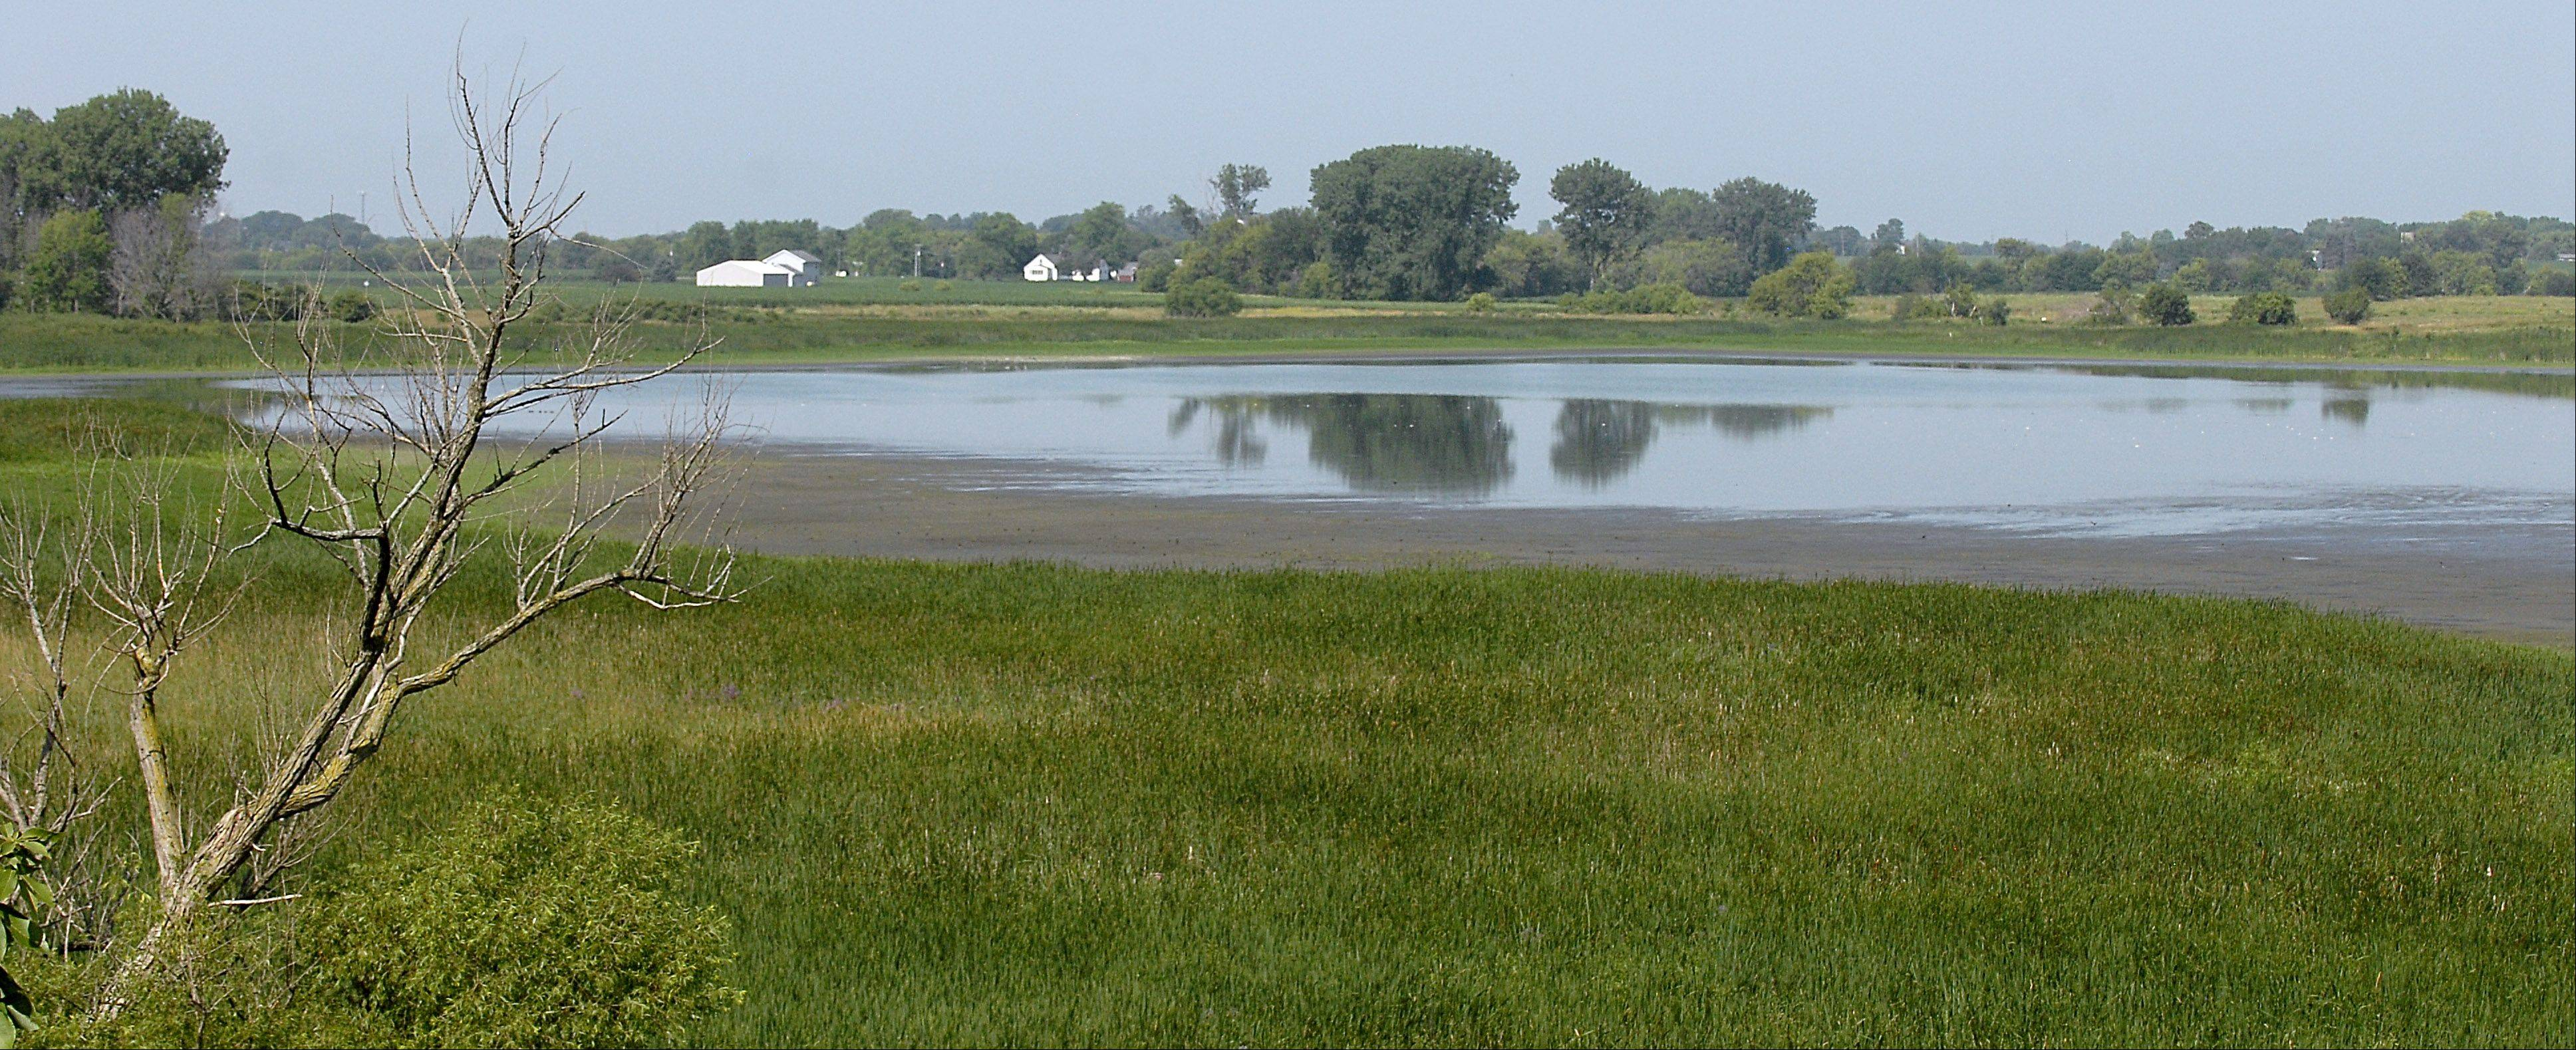 The waters of Nelson Lake Marsh in Batavia have drastically receded during the recent drought.